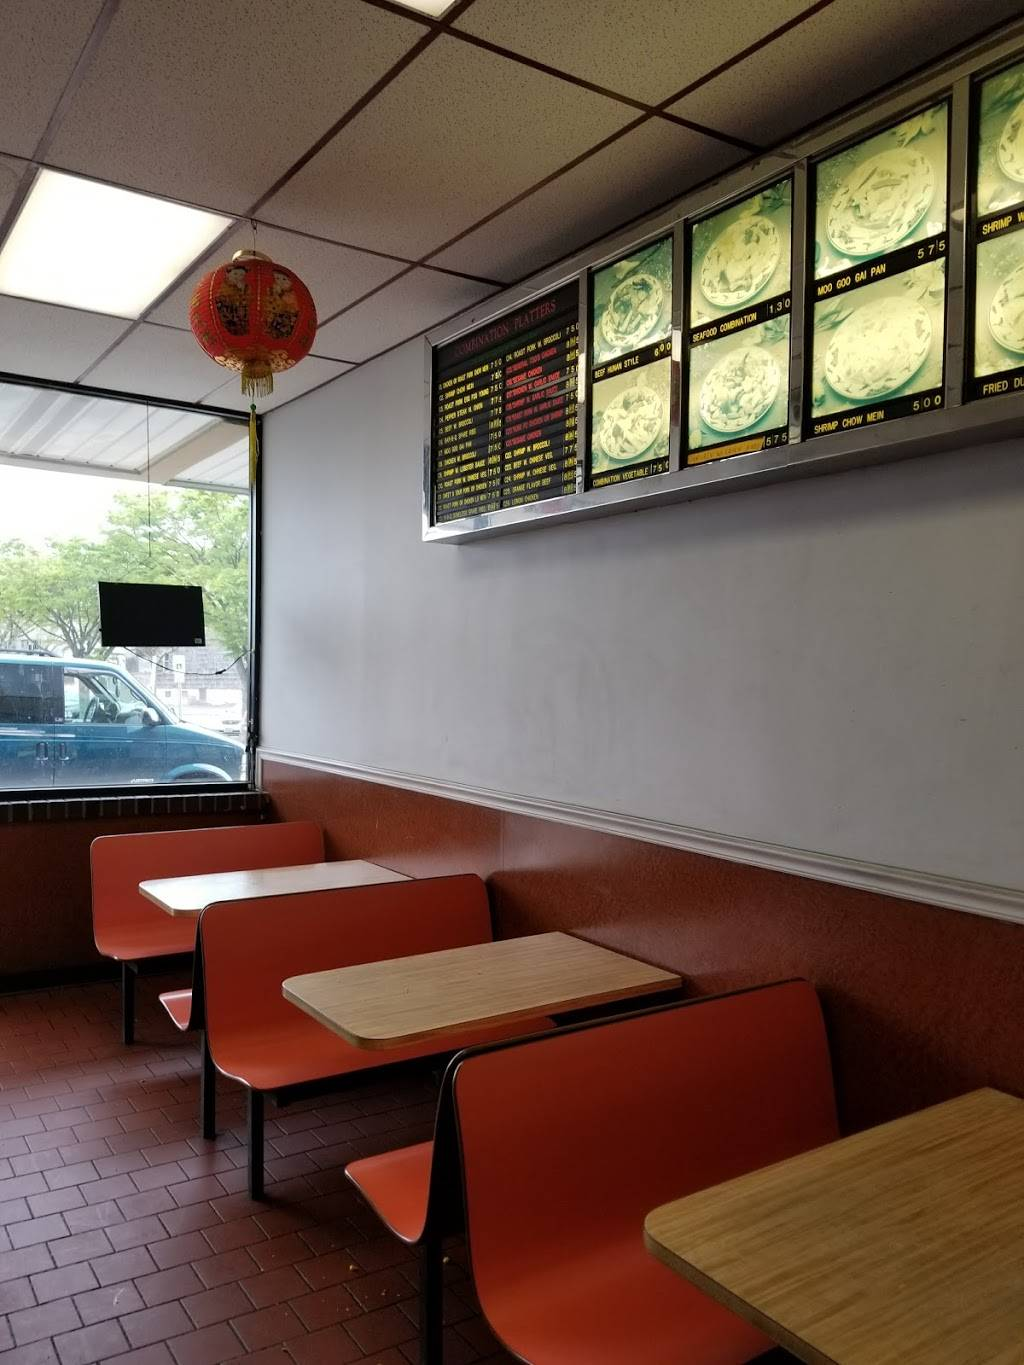 Great Wall   restaurant   426 Grand St, Jersey City, NJ 07302, USA   2014331388 OR +1 201-433-1388